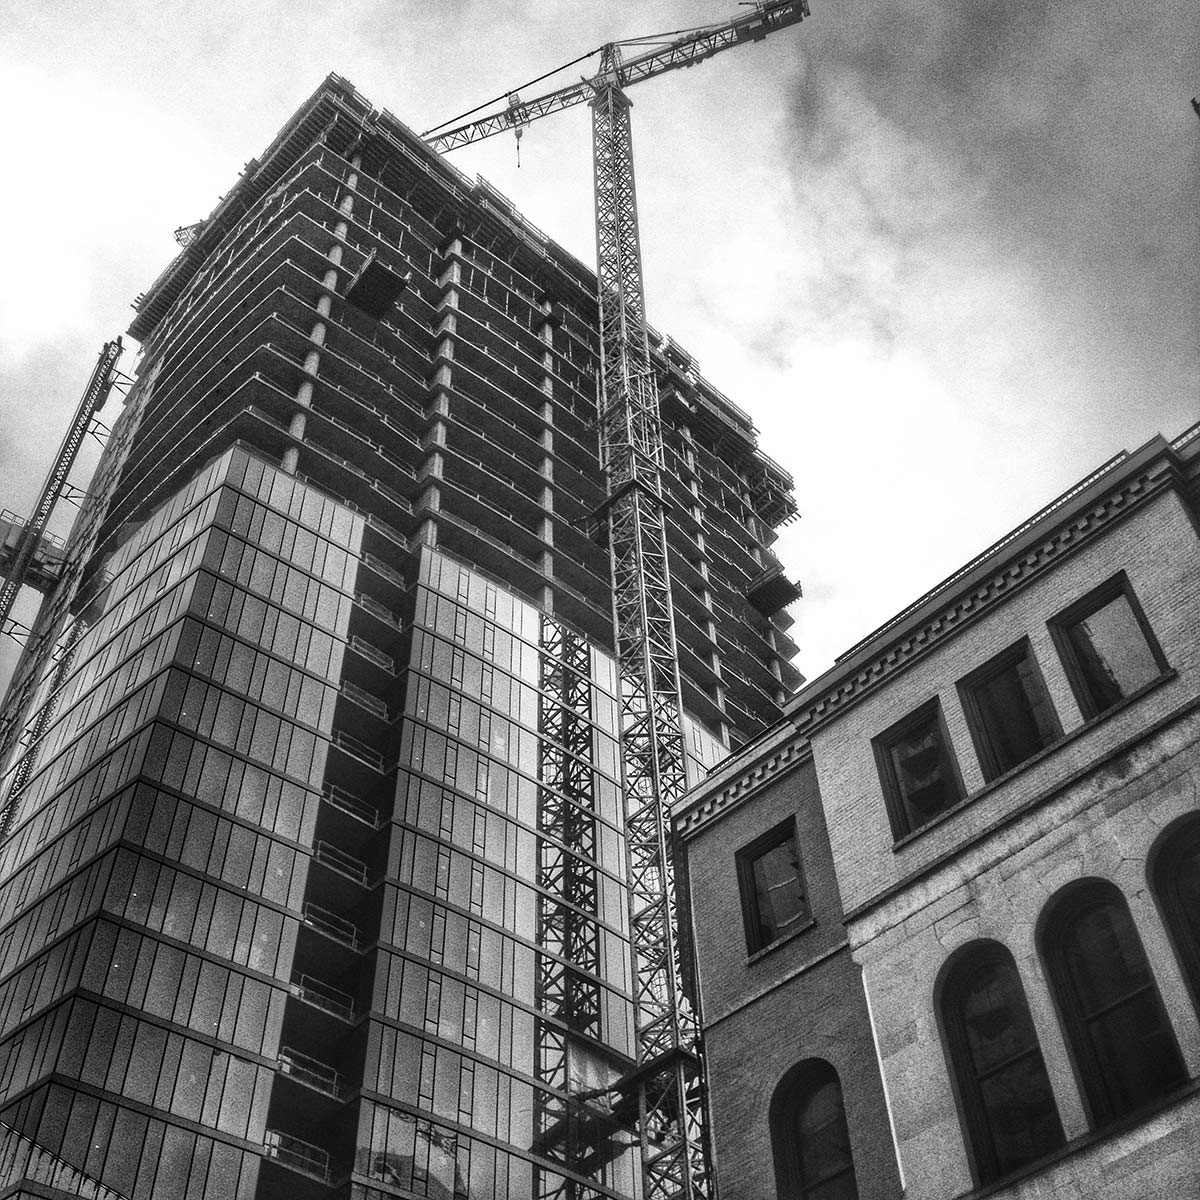 Construction cranes are a common sight in Nashville. Black and white photo by Keith Dotson.